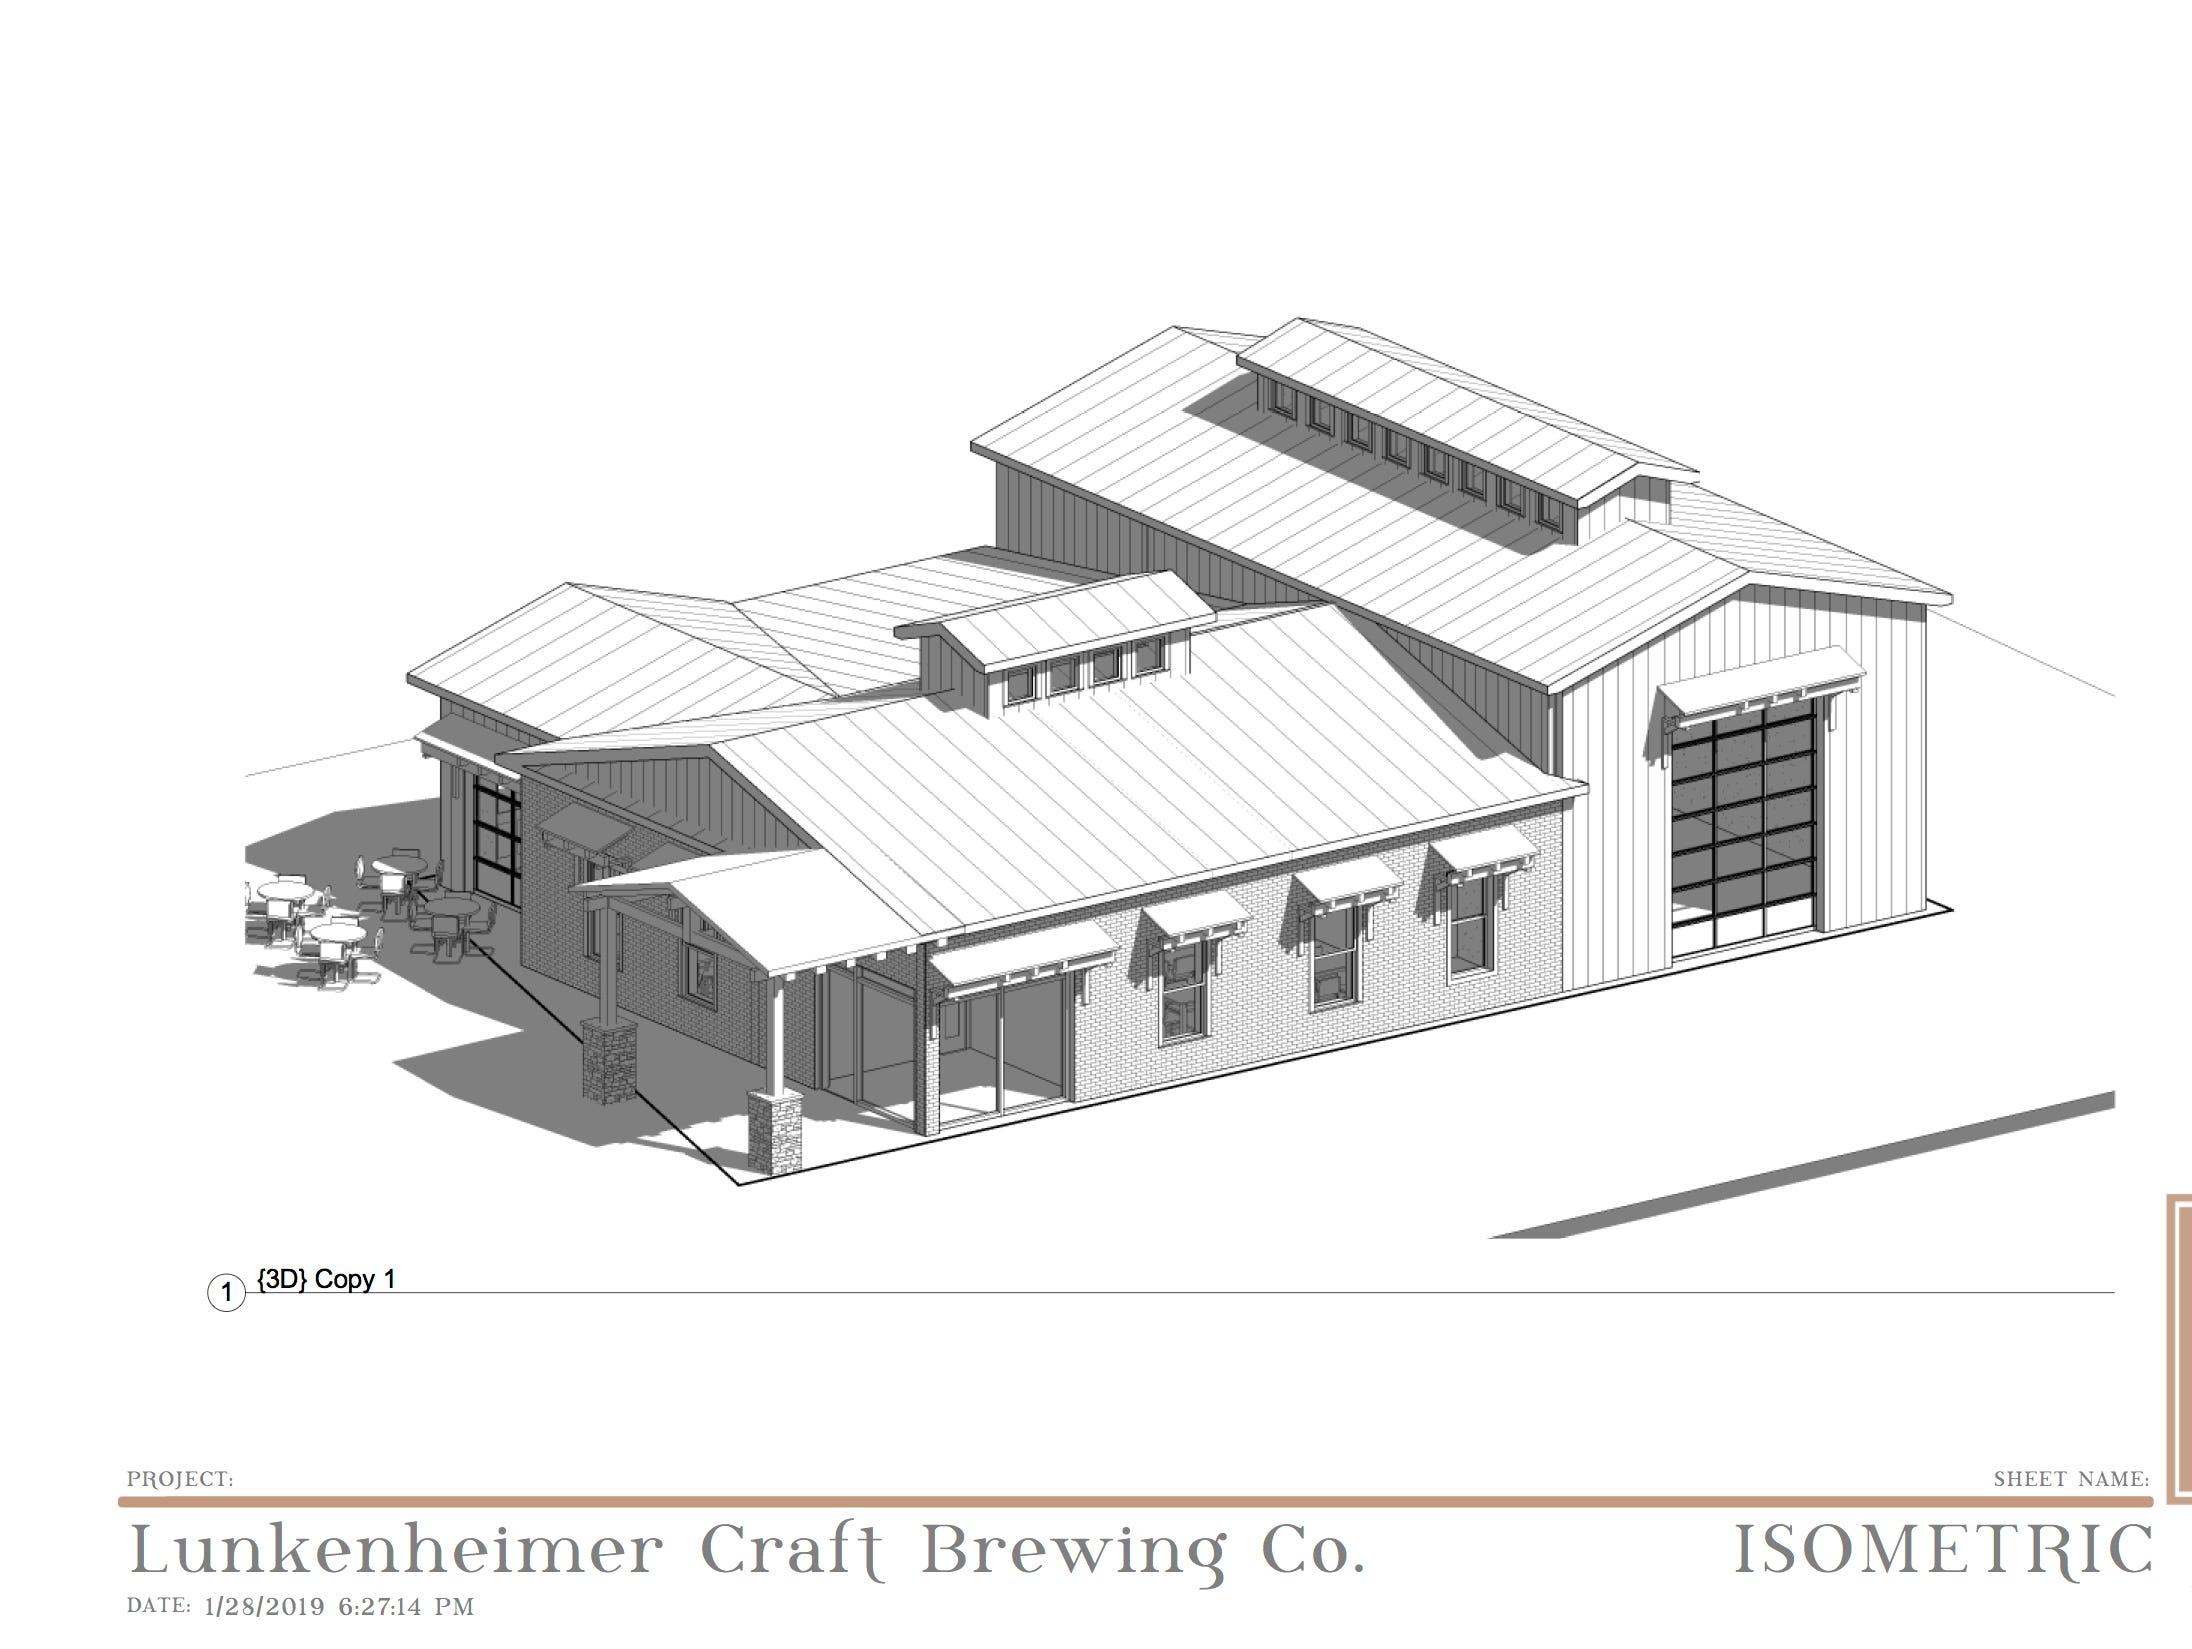 The proposed expanded location of Lunkenheimer Craft Brewing in Weedsport, Cayuga County.